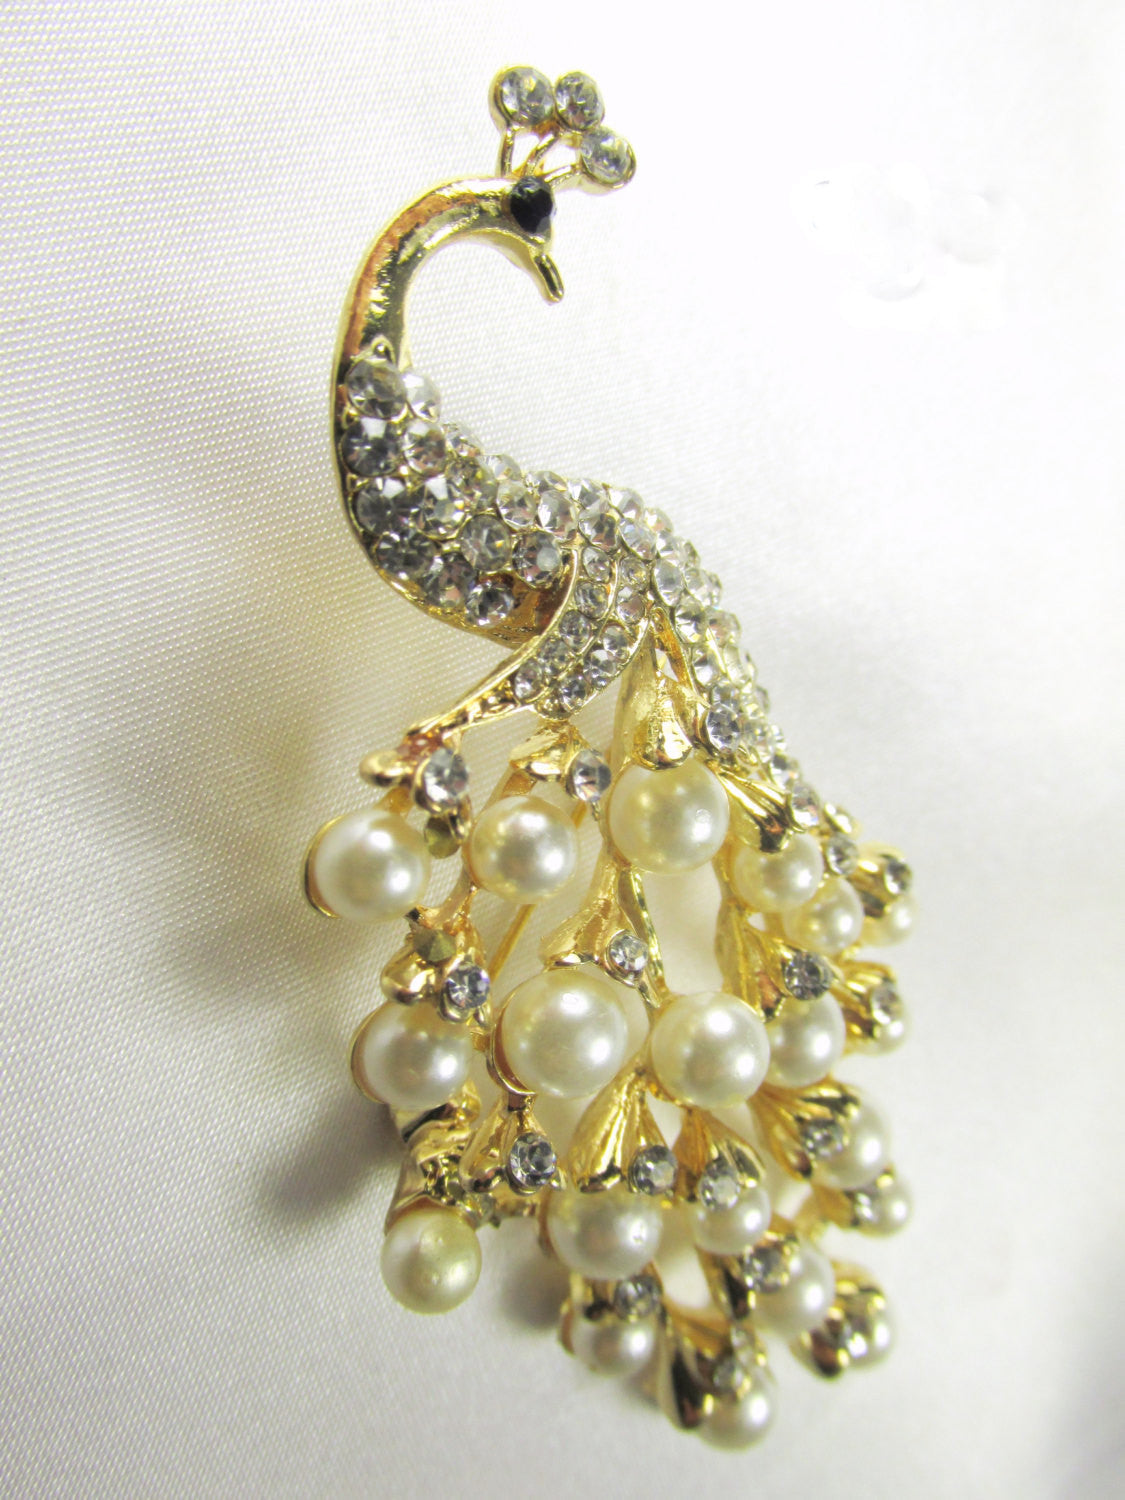 Peacock Brooch with White Pearls and Clear Crystals in Gold - Odyssey Cache - 2